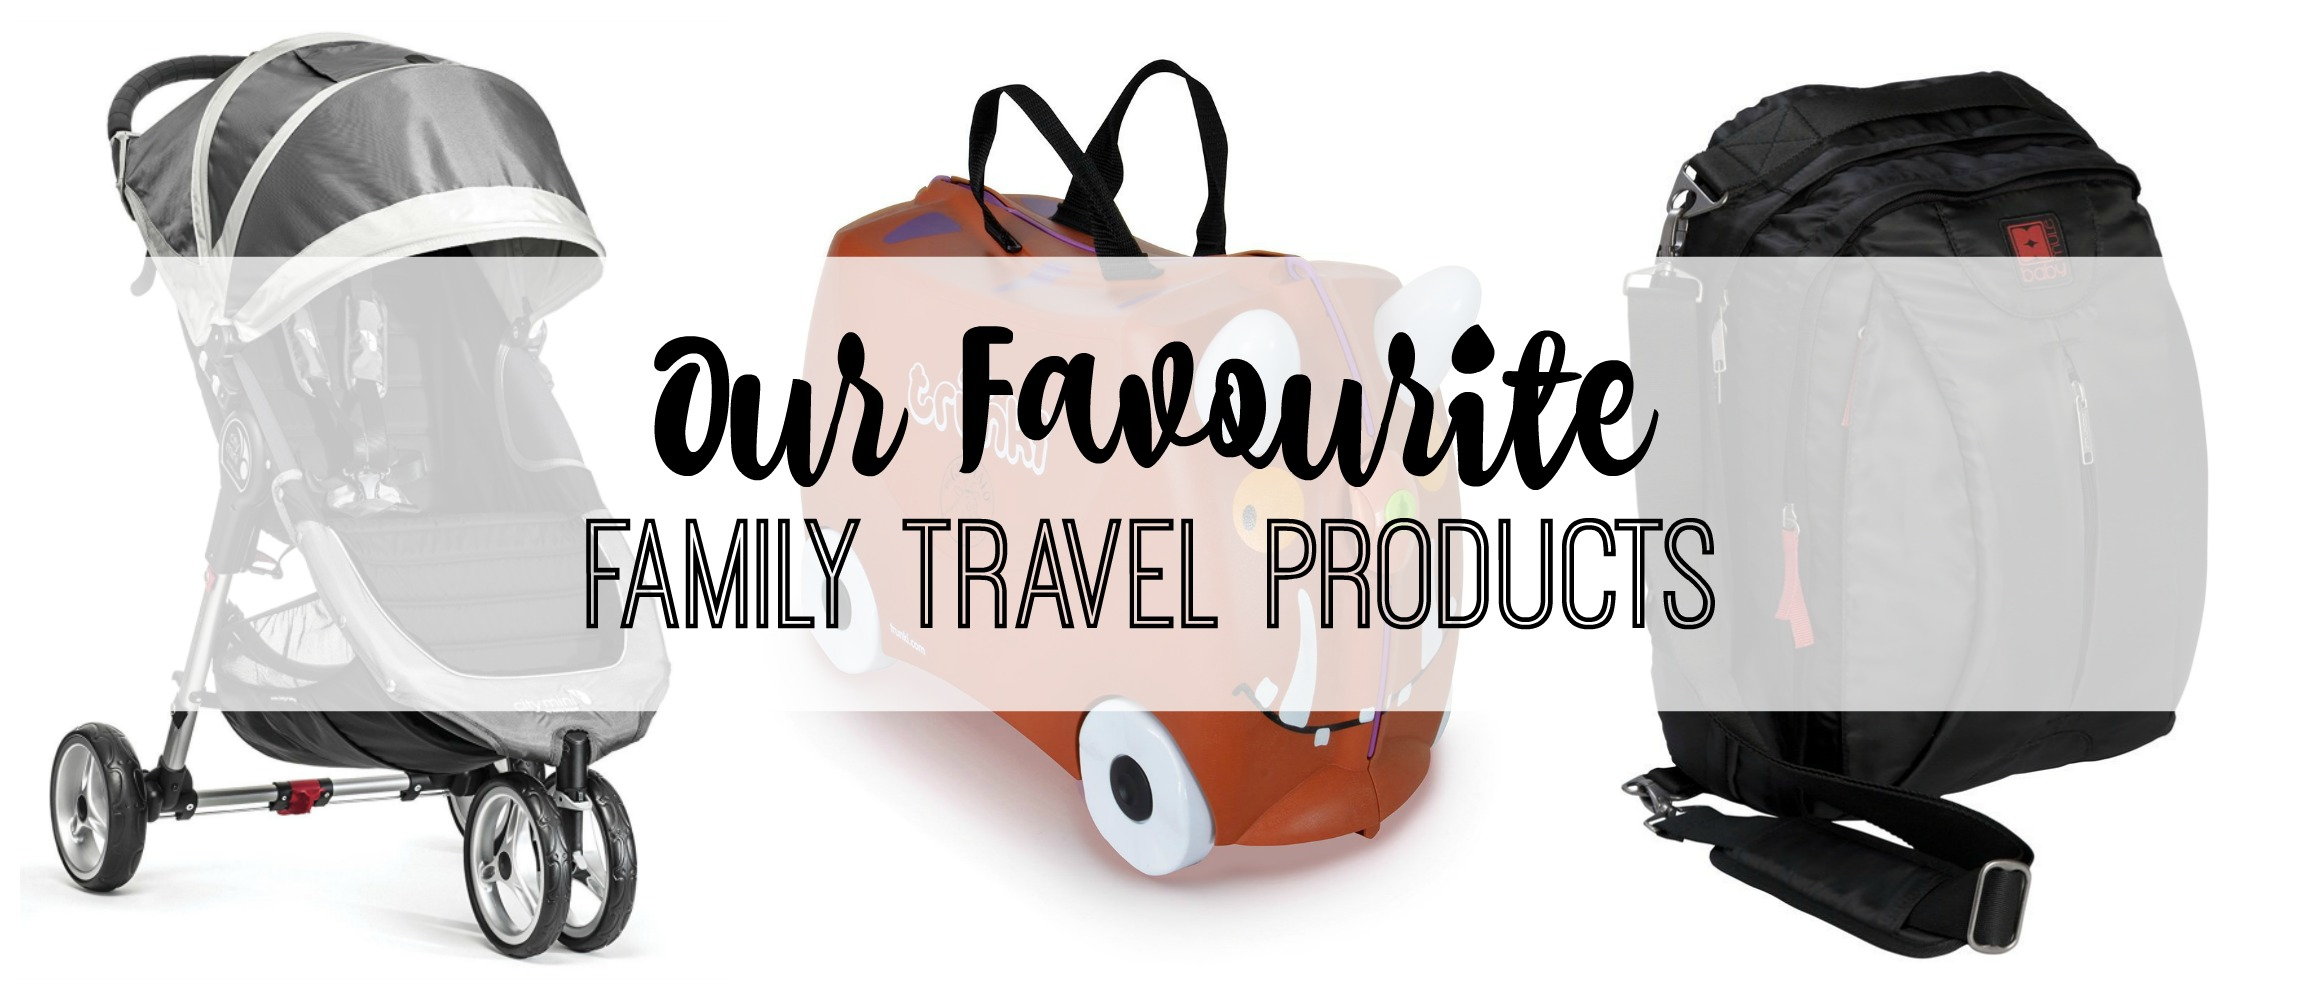 family travel products title